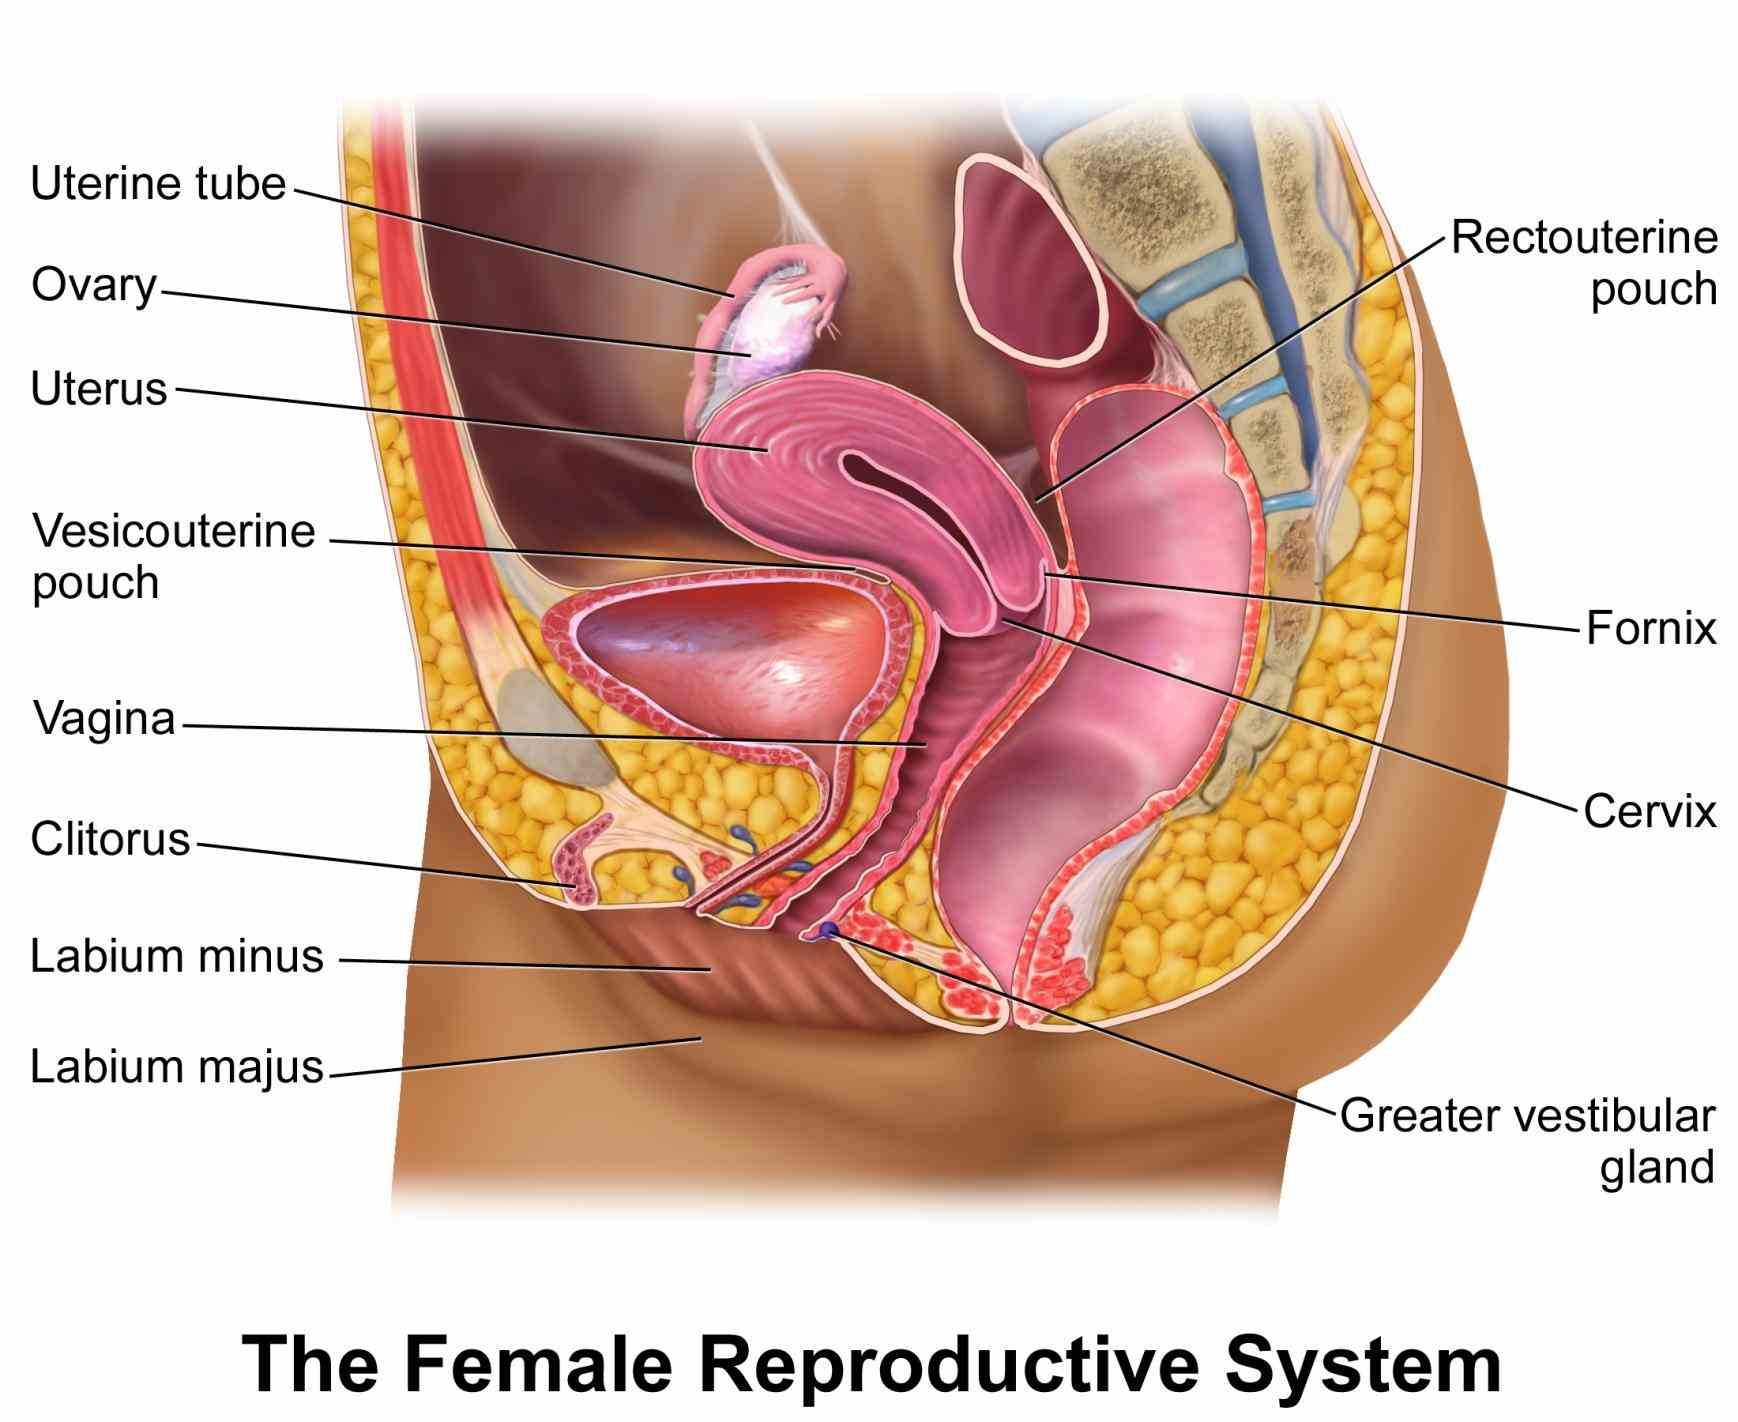 Major Organs Of The Reproductive System And Their Functions Pictures Wallpapers